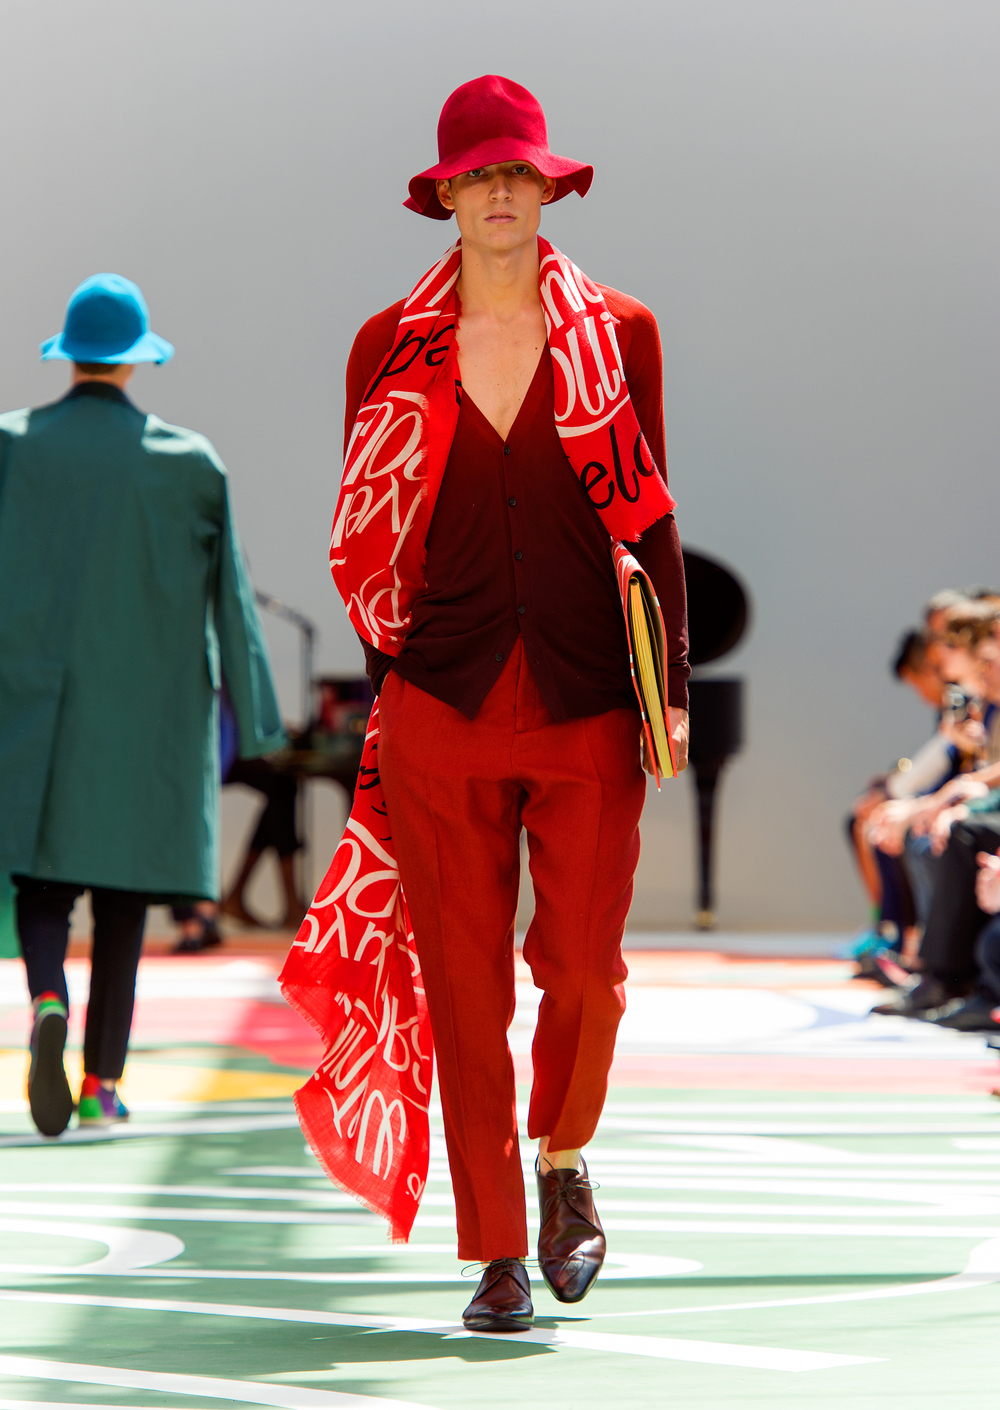 Burberry Prorsum Menswear Spring Summer 2015 Collection - Look 37.jpg